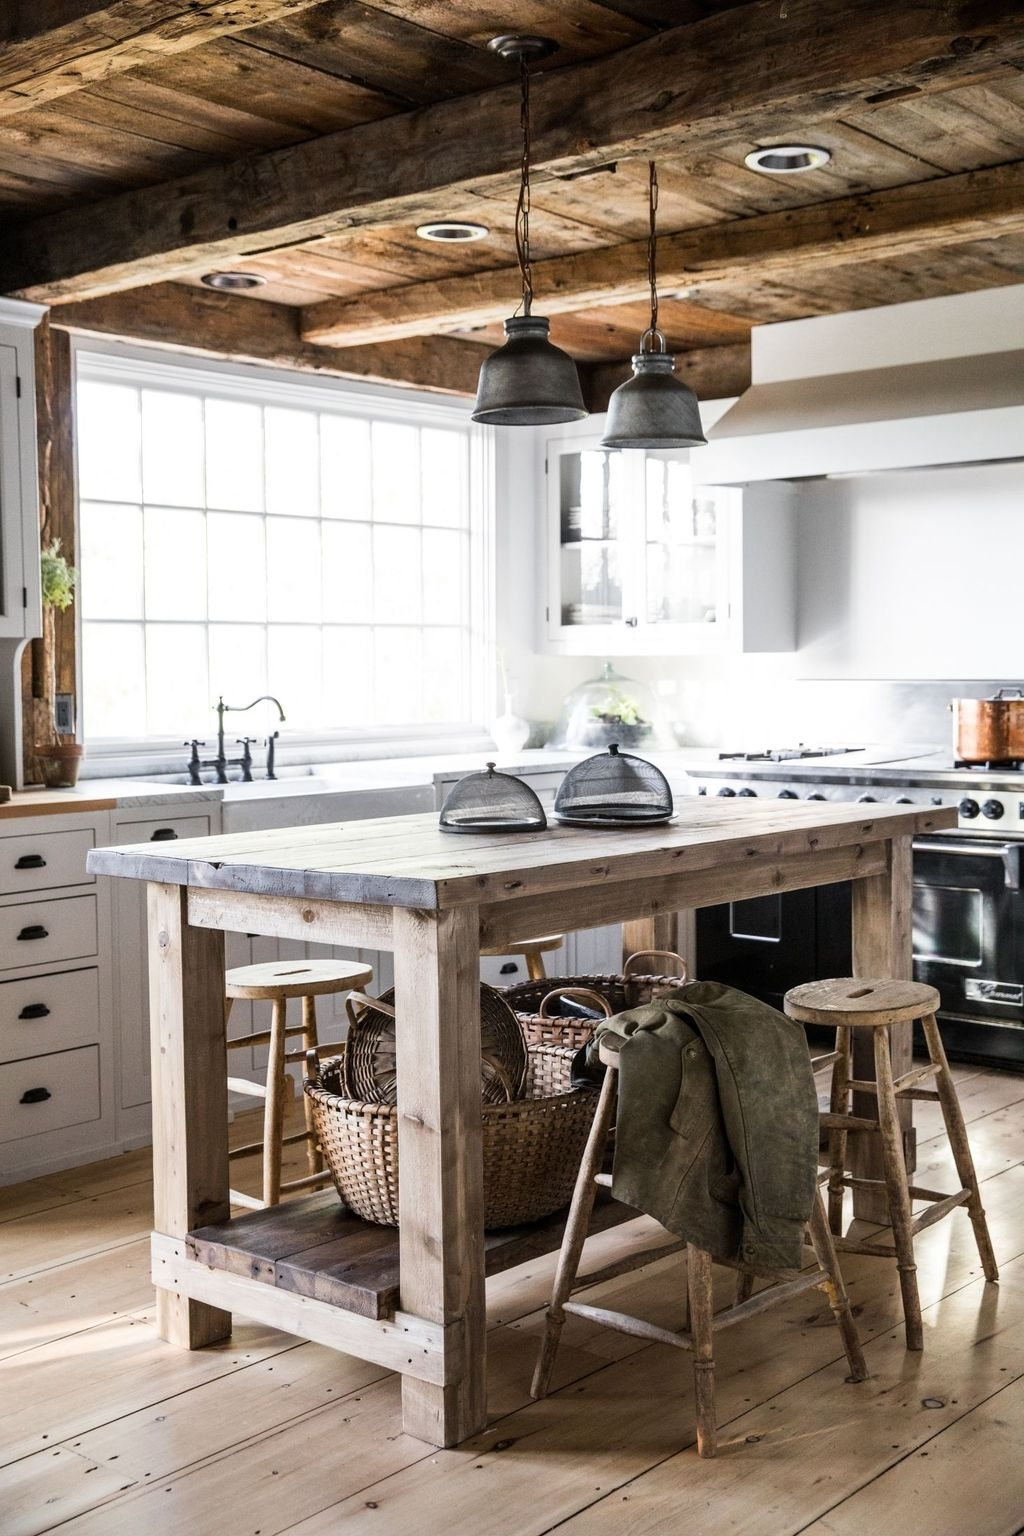 44 Awesome Rustic Kitchen Island Design Ideas   PIMPHOMEE